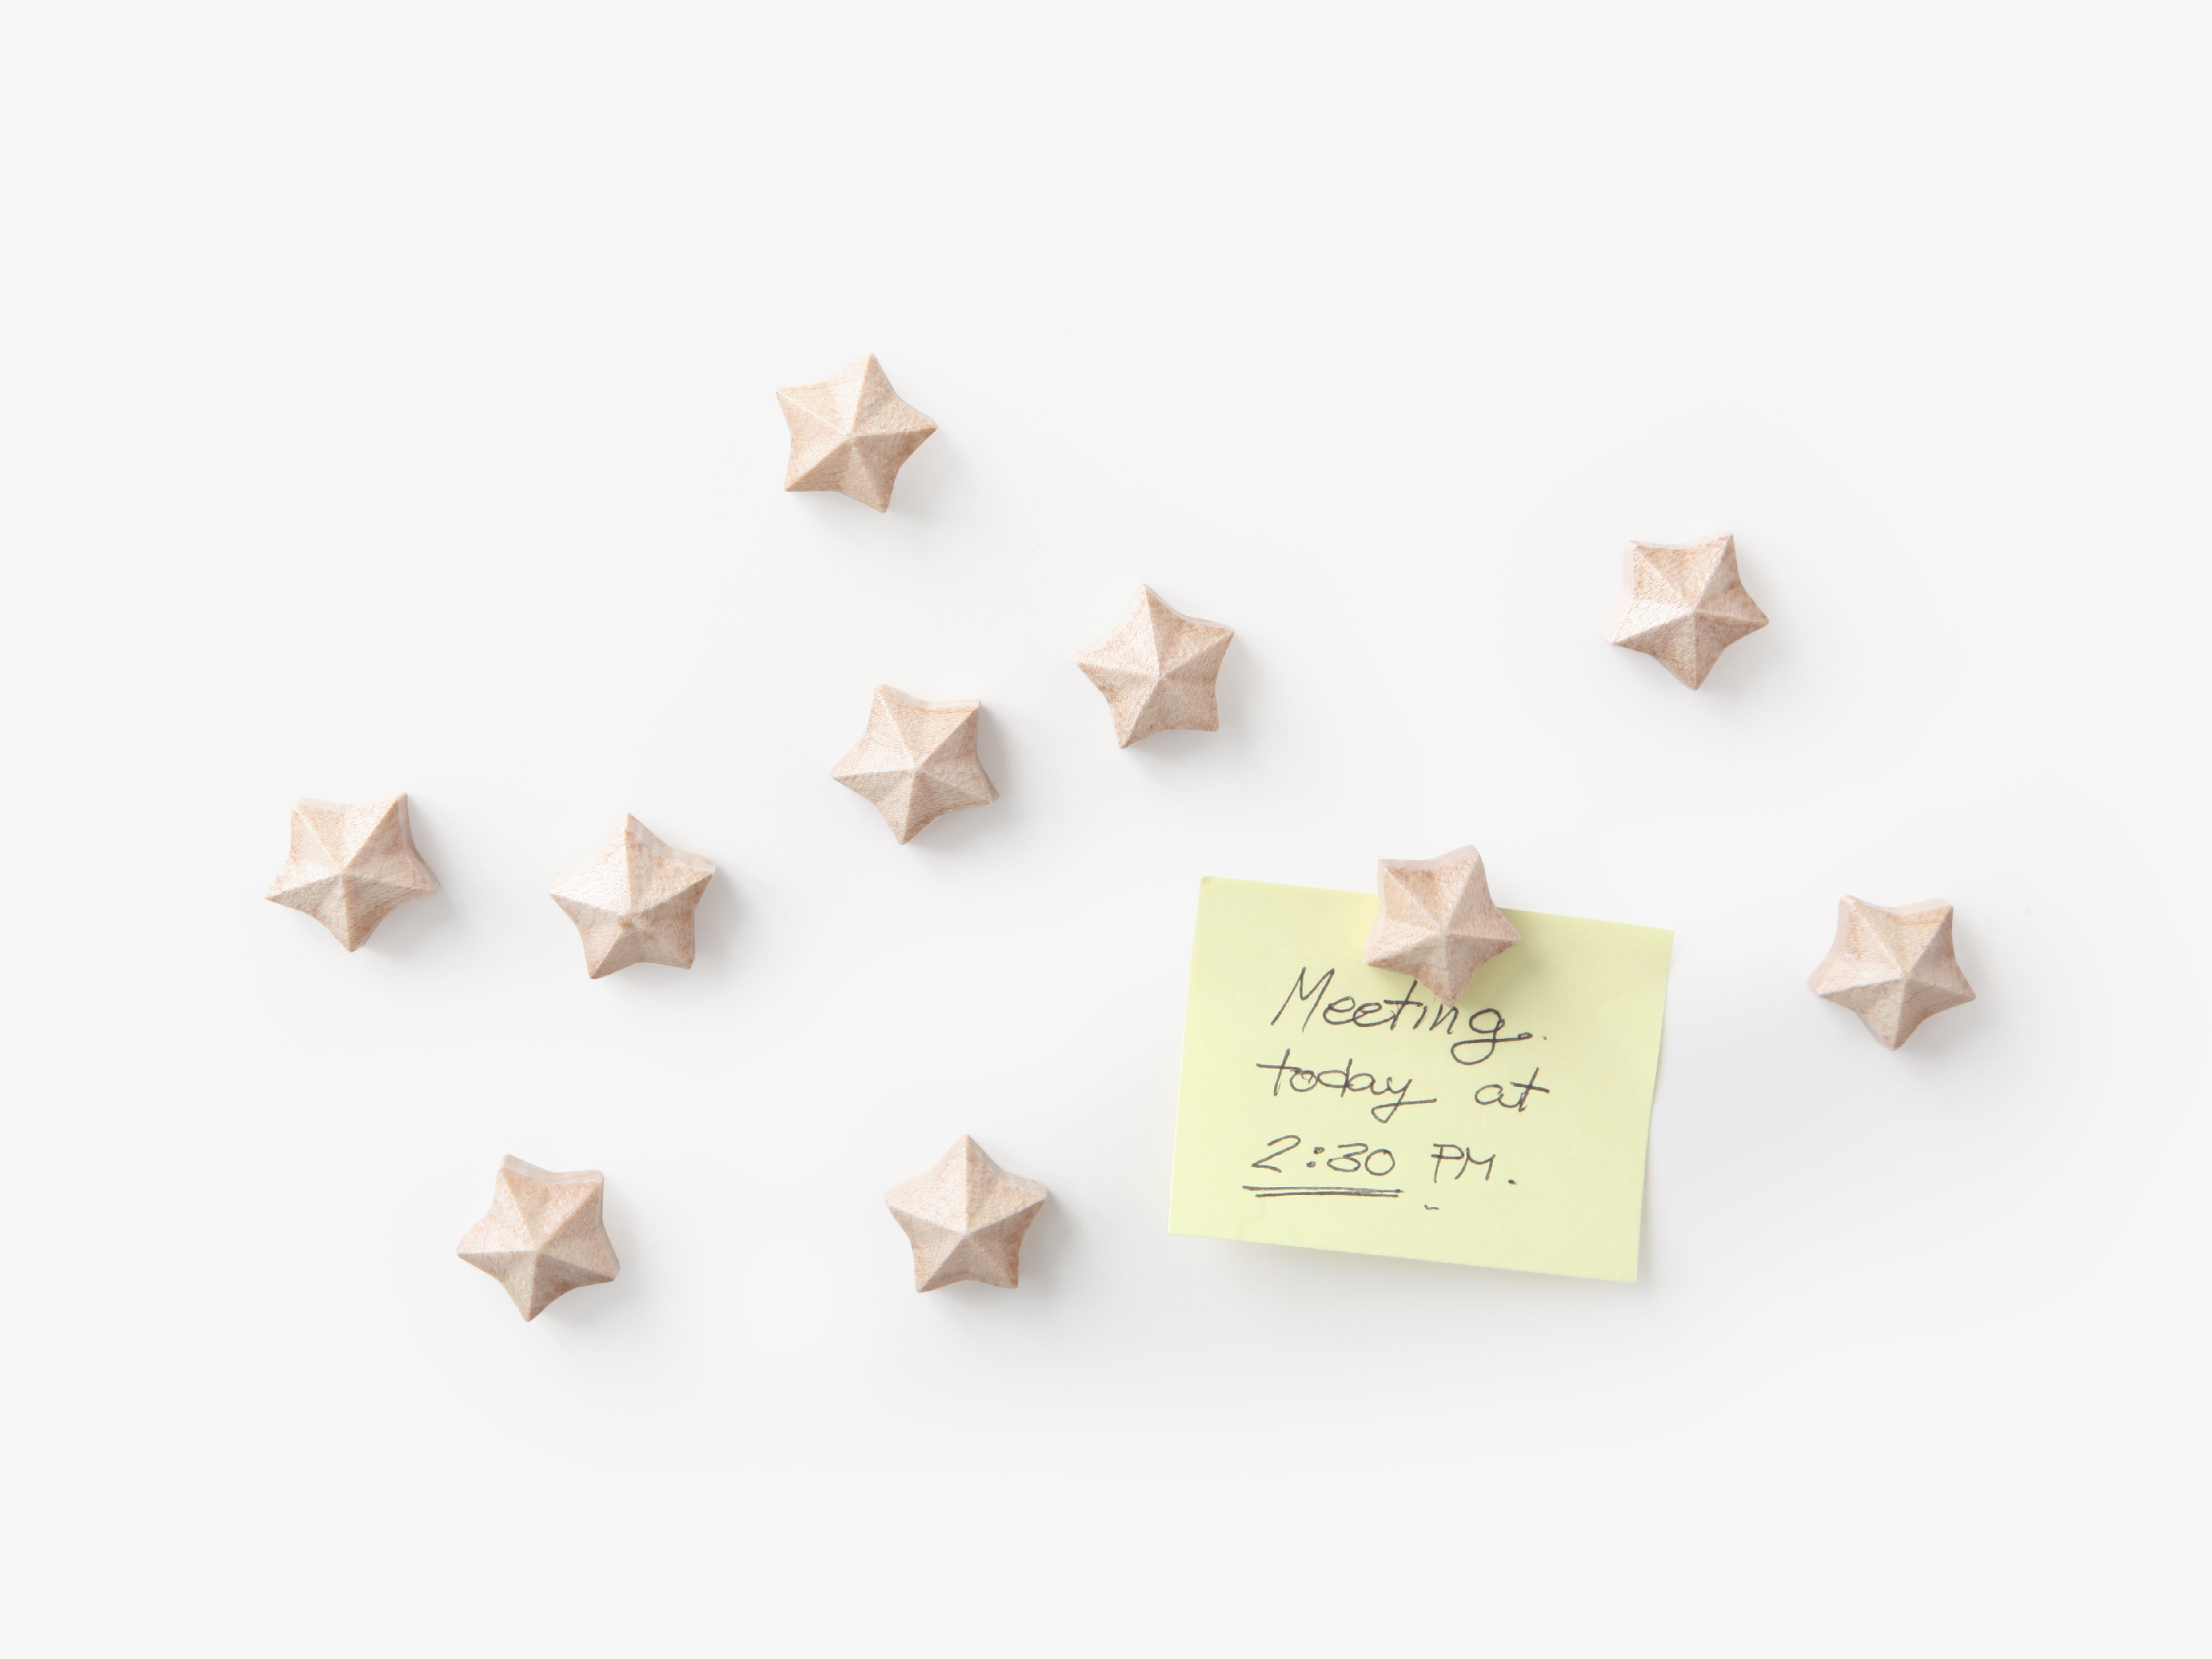 AURIGA  Heighten your imagination at your working space with Auriga magnet set www.qualyandco.com  Contact sales@qualyandco.com for more wholesales information and worldwide brand distribution.  #star #magnet #panaobjects #imagination #working #wood #design #gift #distribution #wholesales